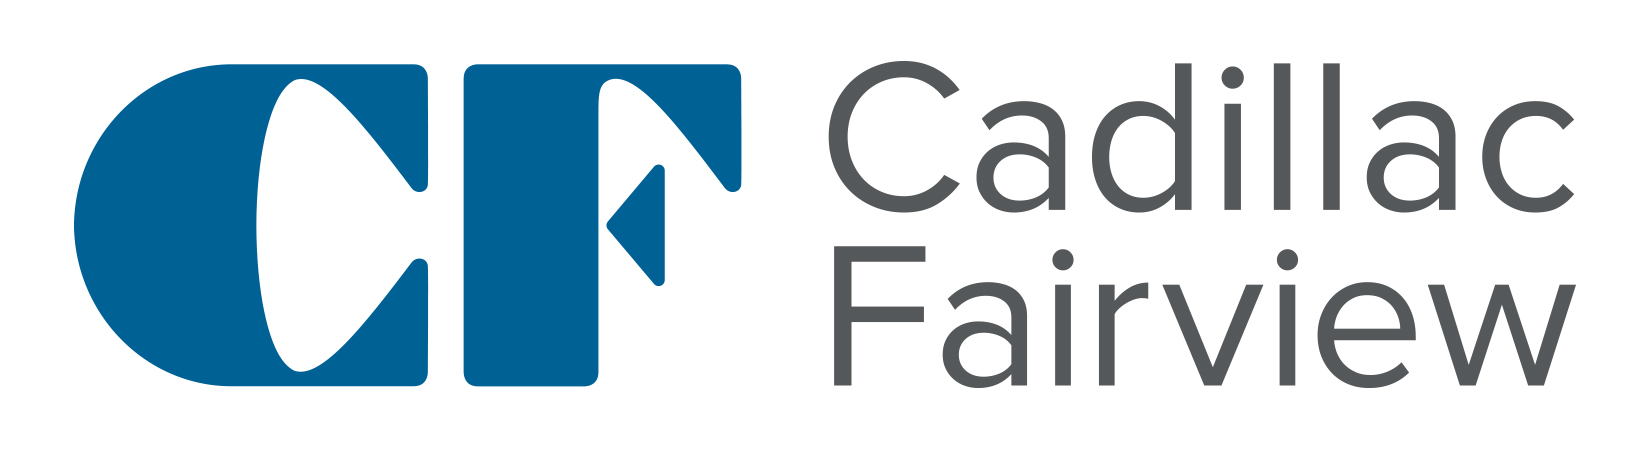 Logo Image for Cadillac Fairview